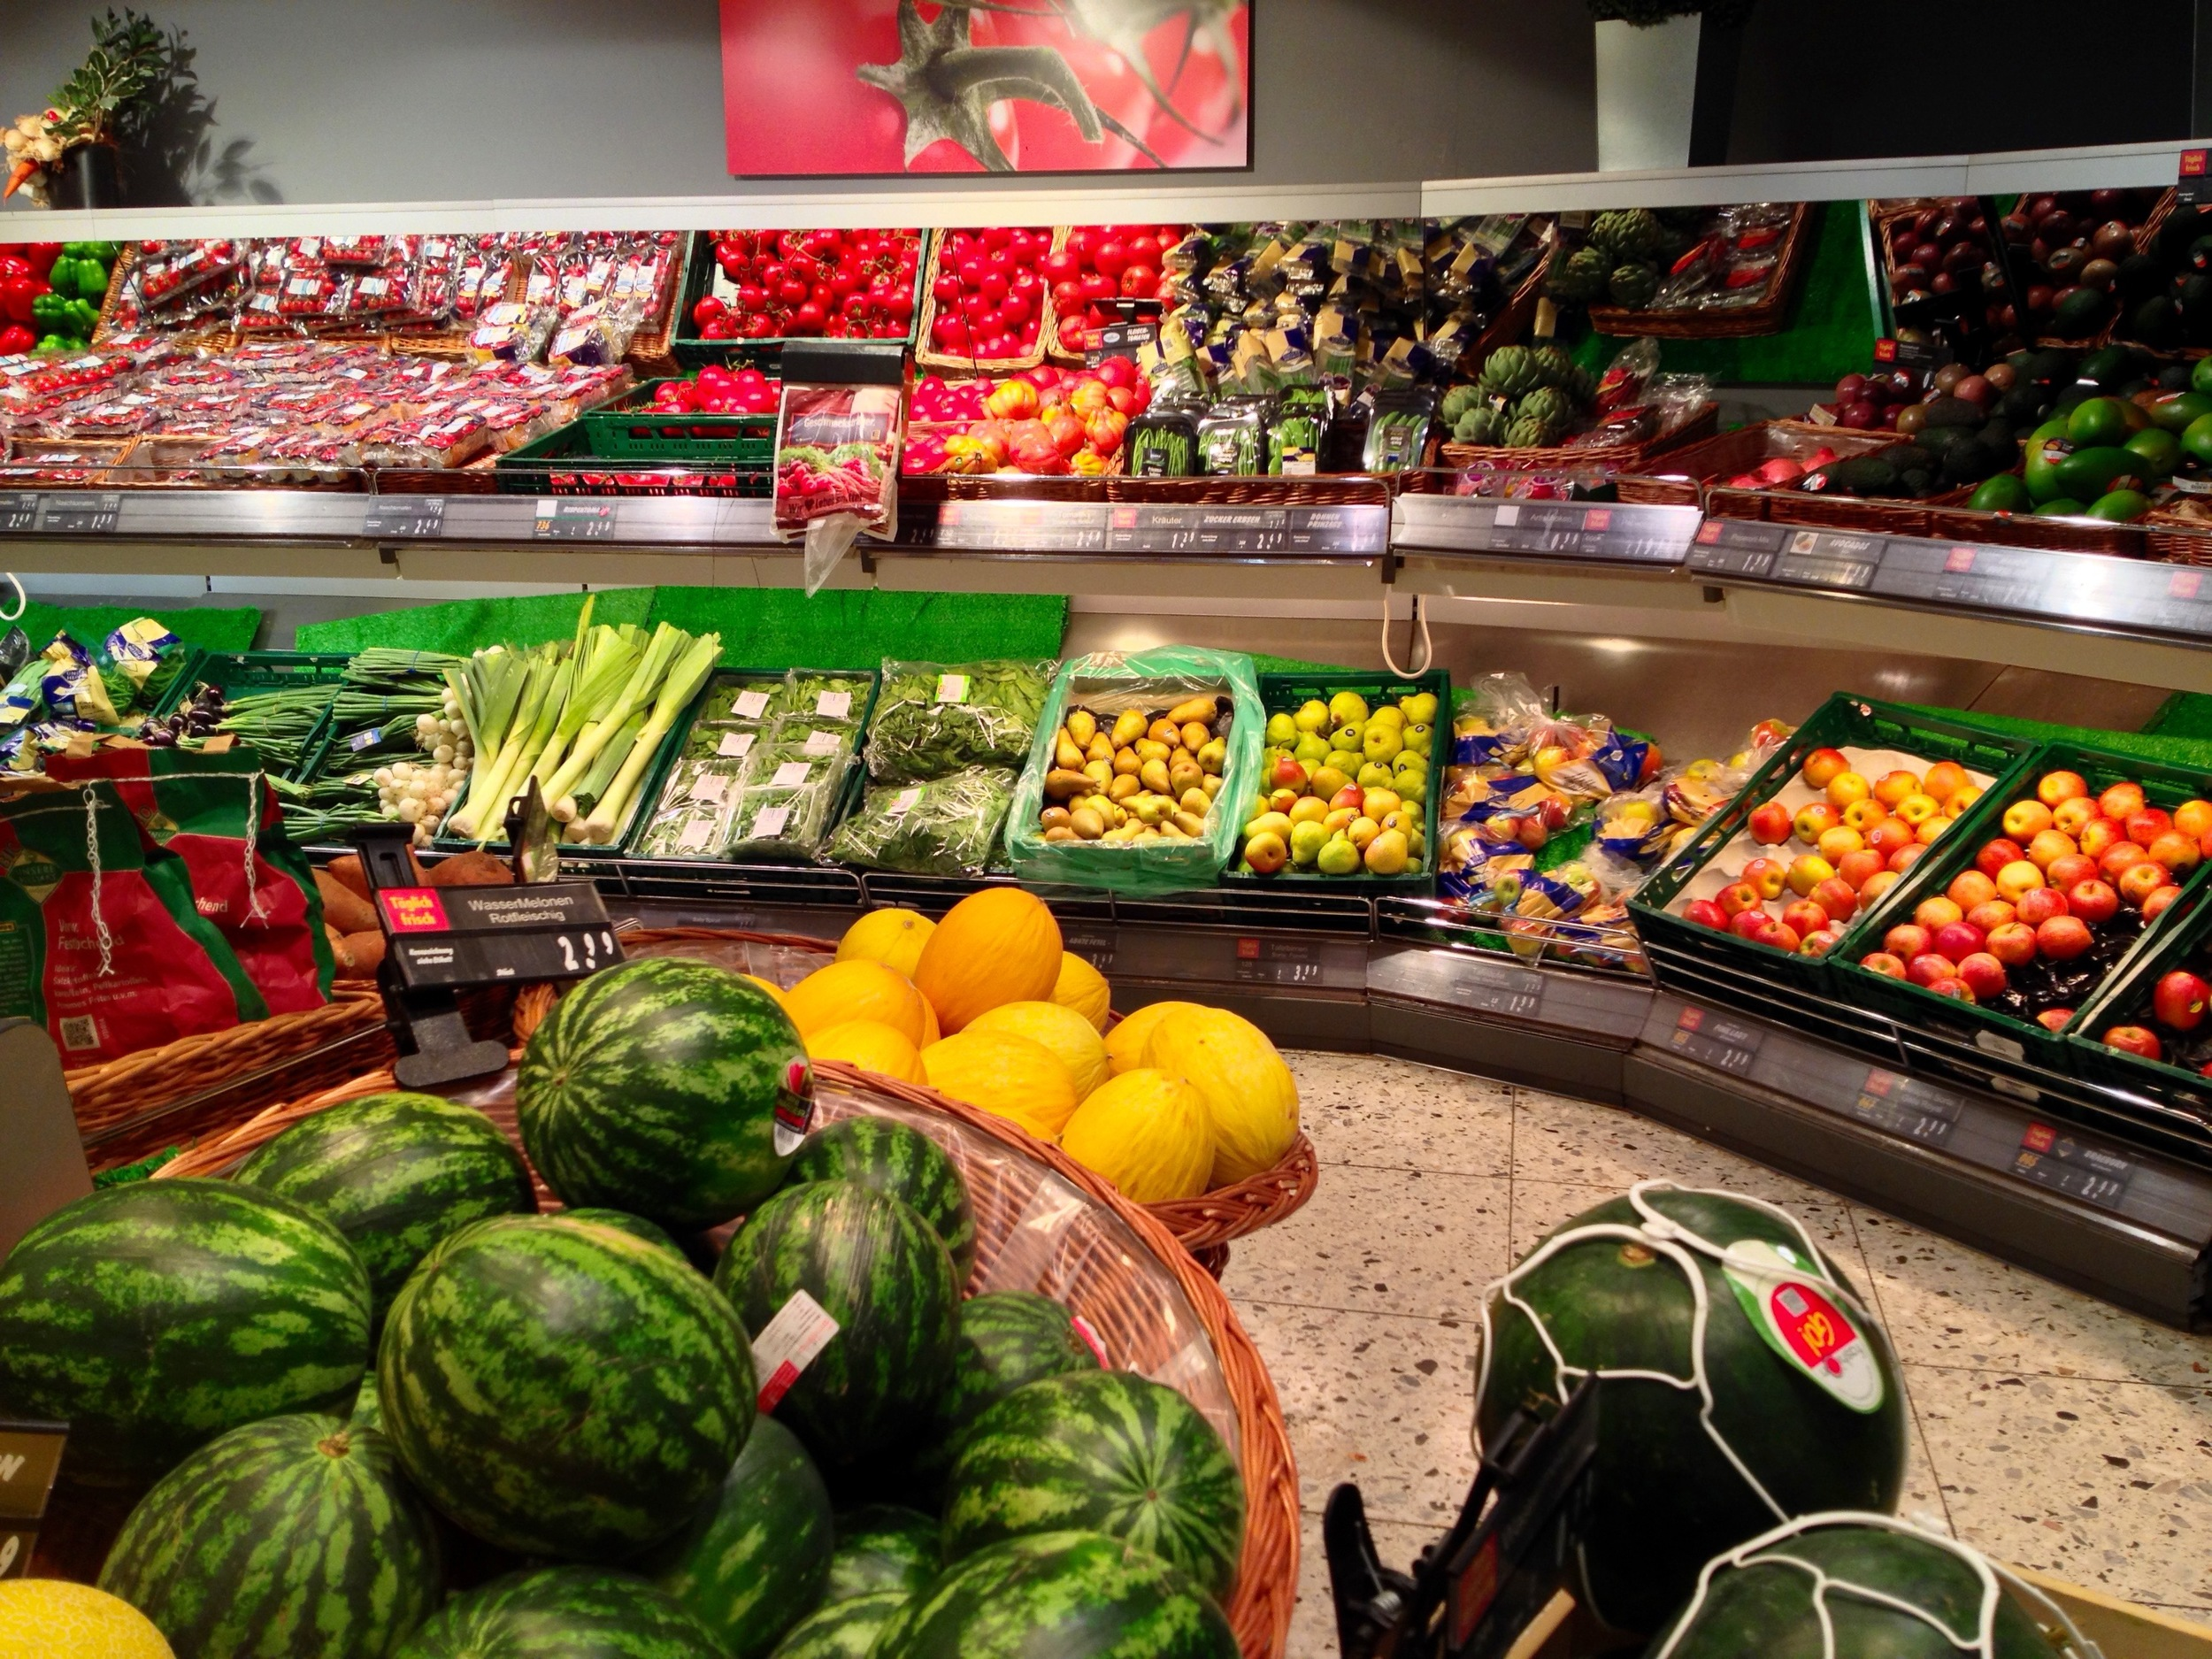 Part of the produce aisle with summer fruits in season